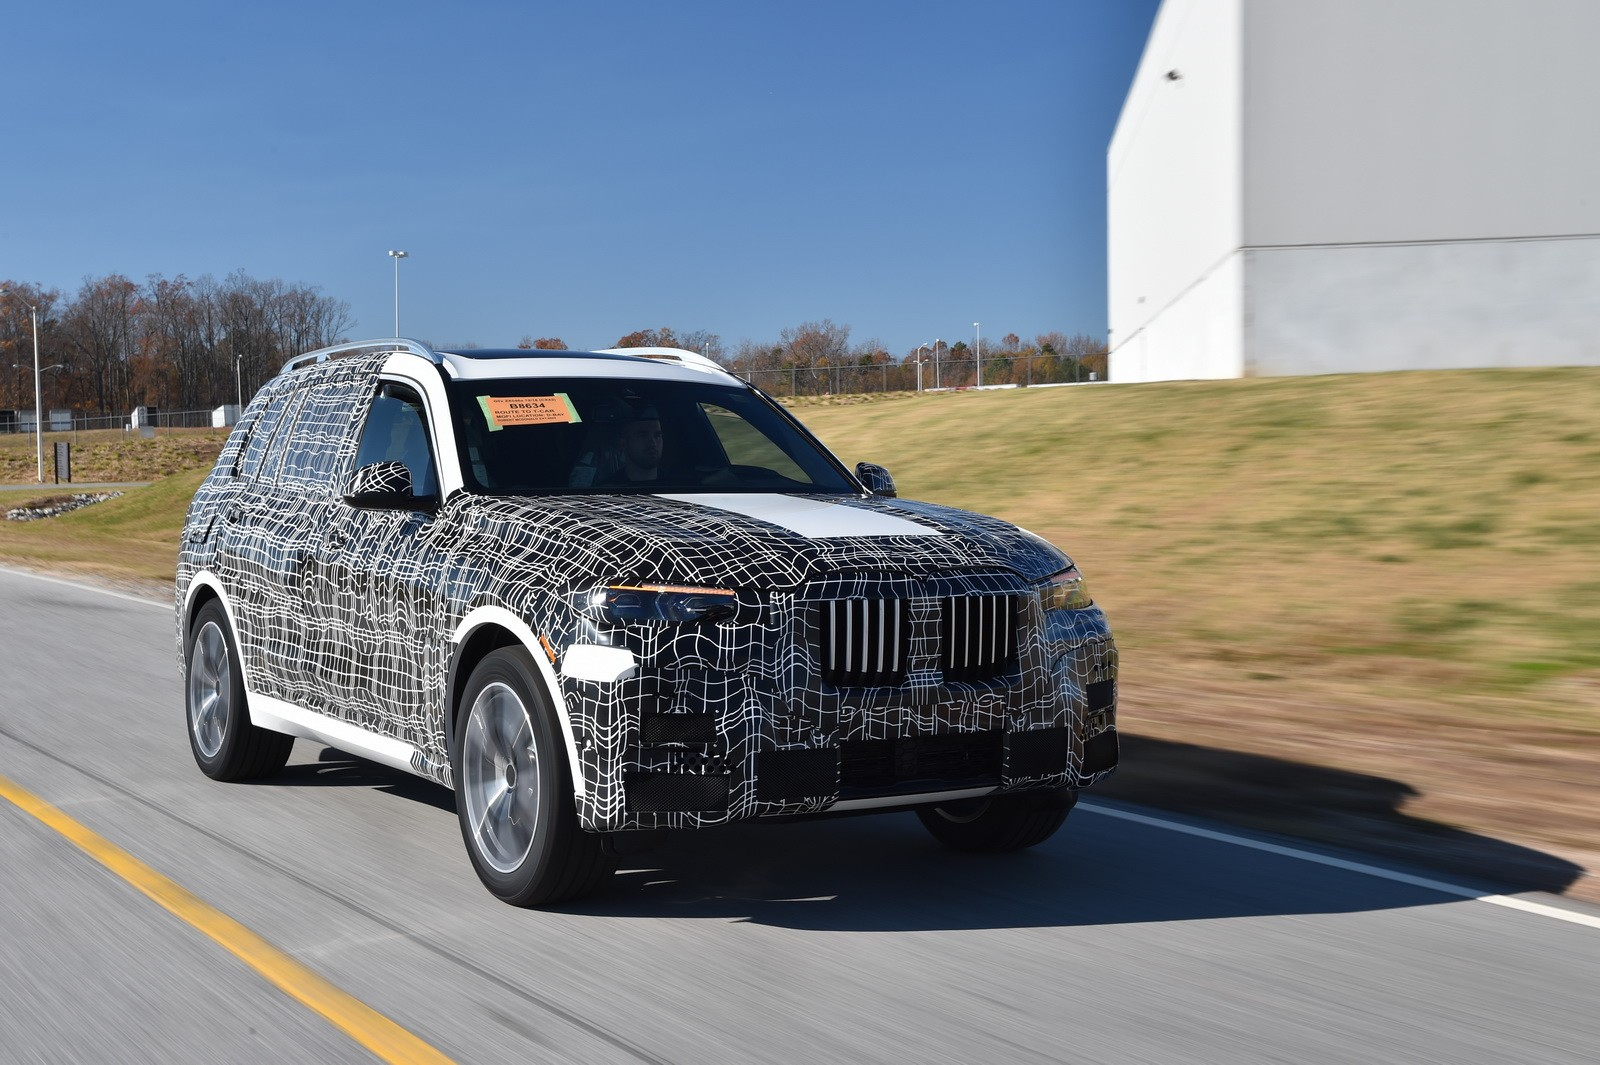 2019 BMW X7 (G07) Specs And Options Made Official By VIN